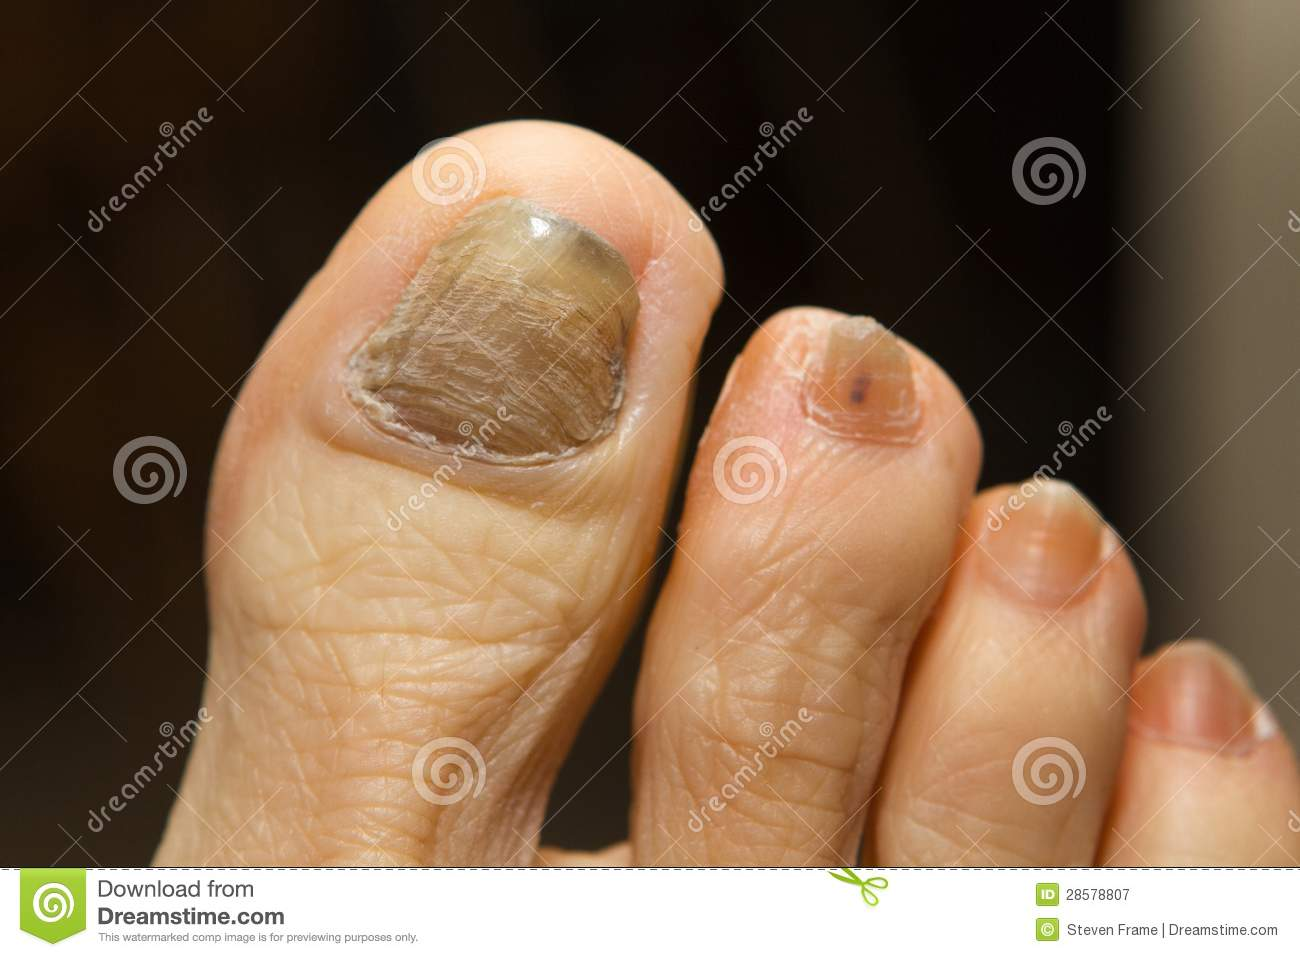 Chemotherapy Fungus Toenail Stock Image - Image of cancer, health ...